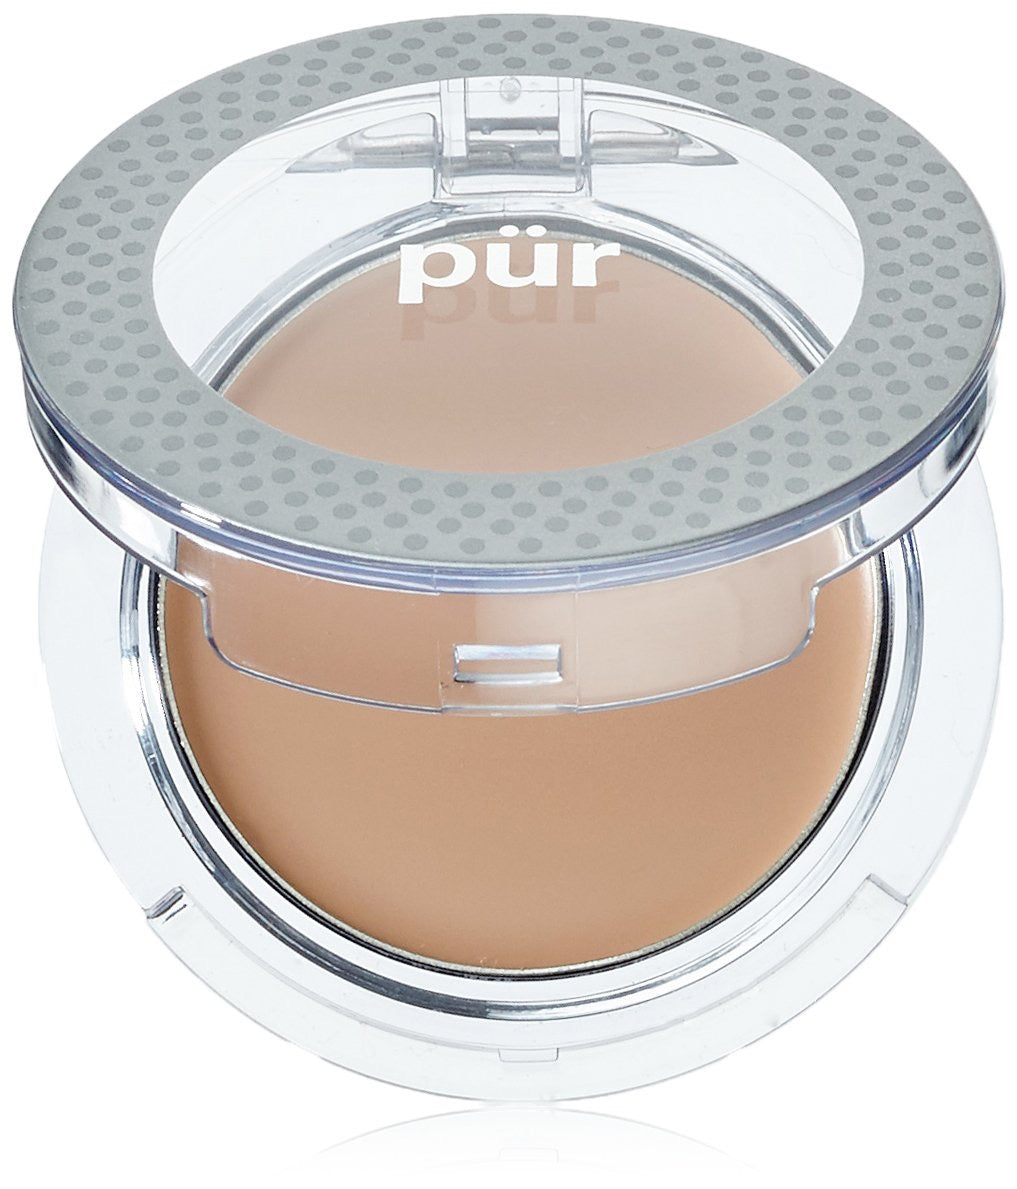 Pür Cosmetics Disappearing Act 4in 1 Concealer 2.8g